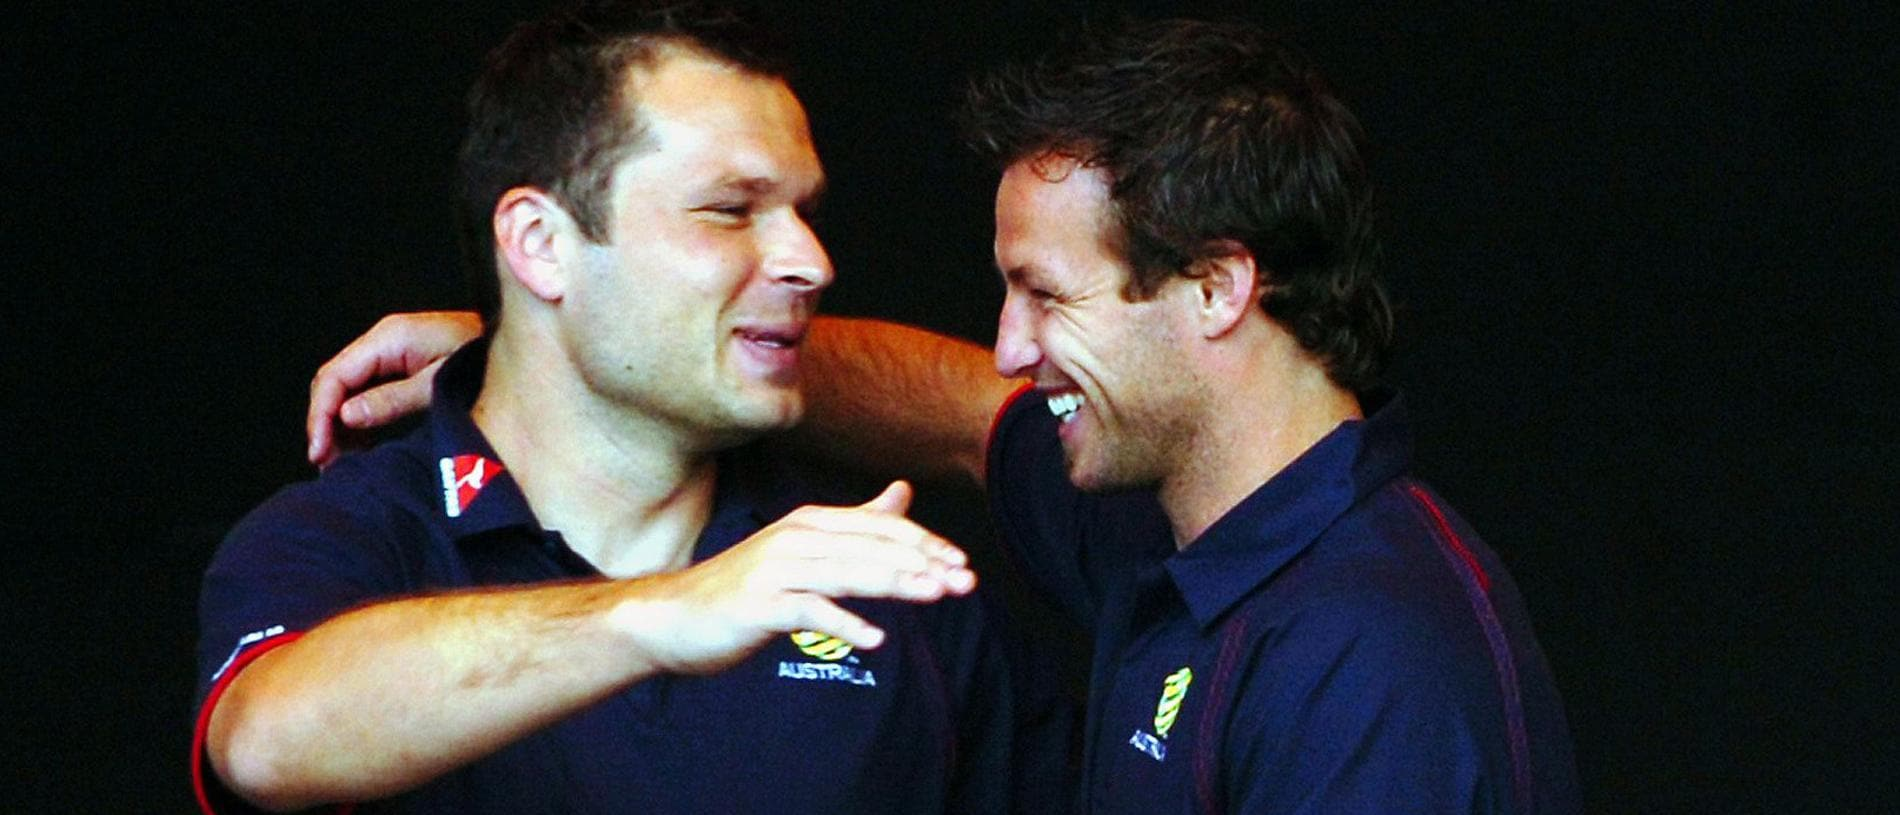 Mark Viduka and Lucas Neill Socceroos in the Domain after there win last night 17/11/05 Picture: Simon  Dean